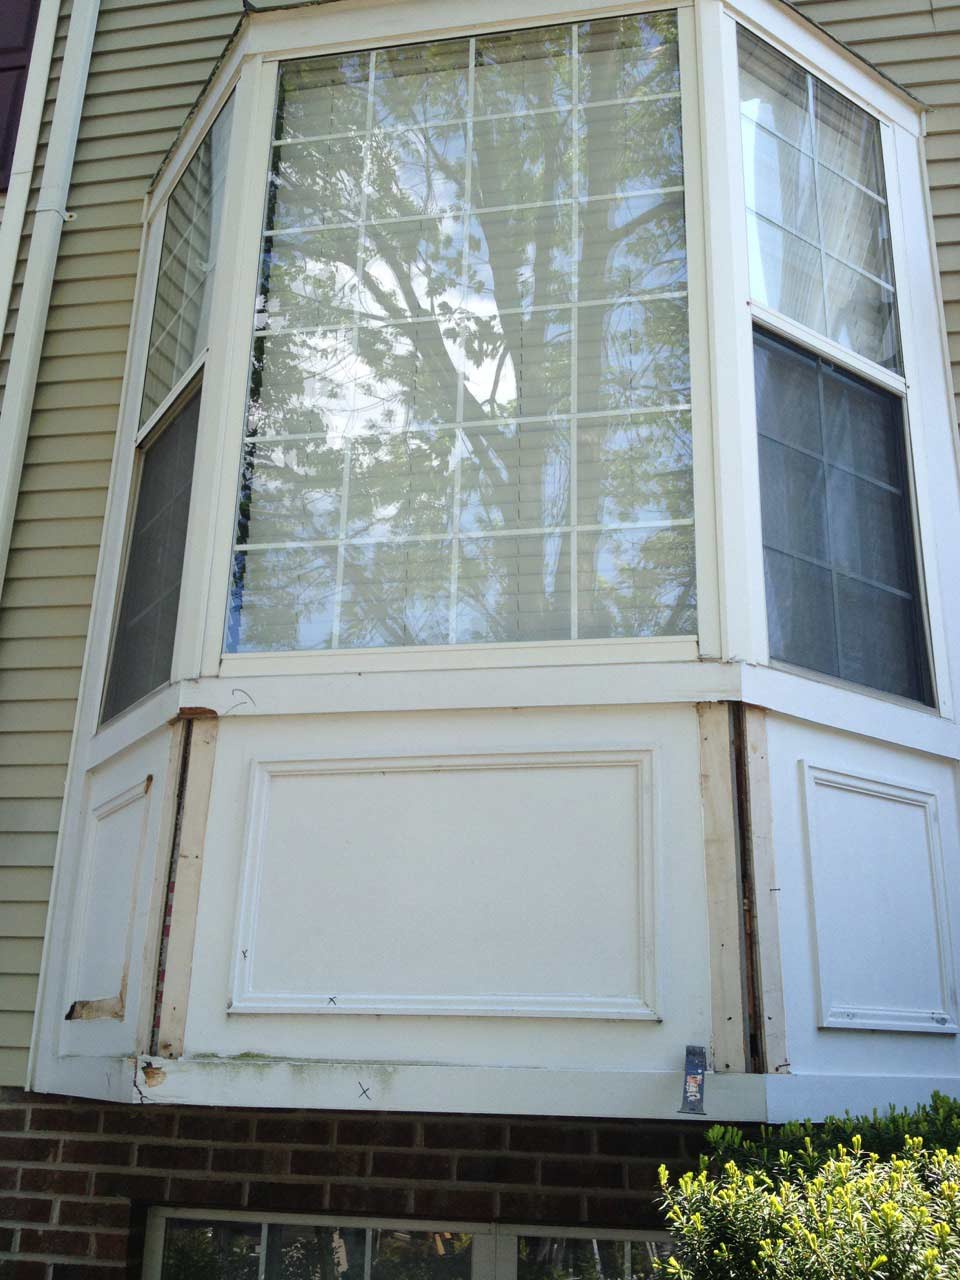 Stb Painting Company Odenton Md Residential Rotting Wood Window Panel Door Frame Replacement